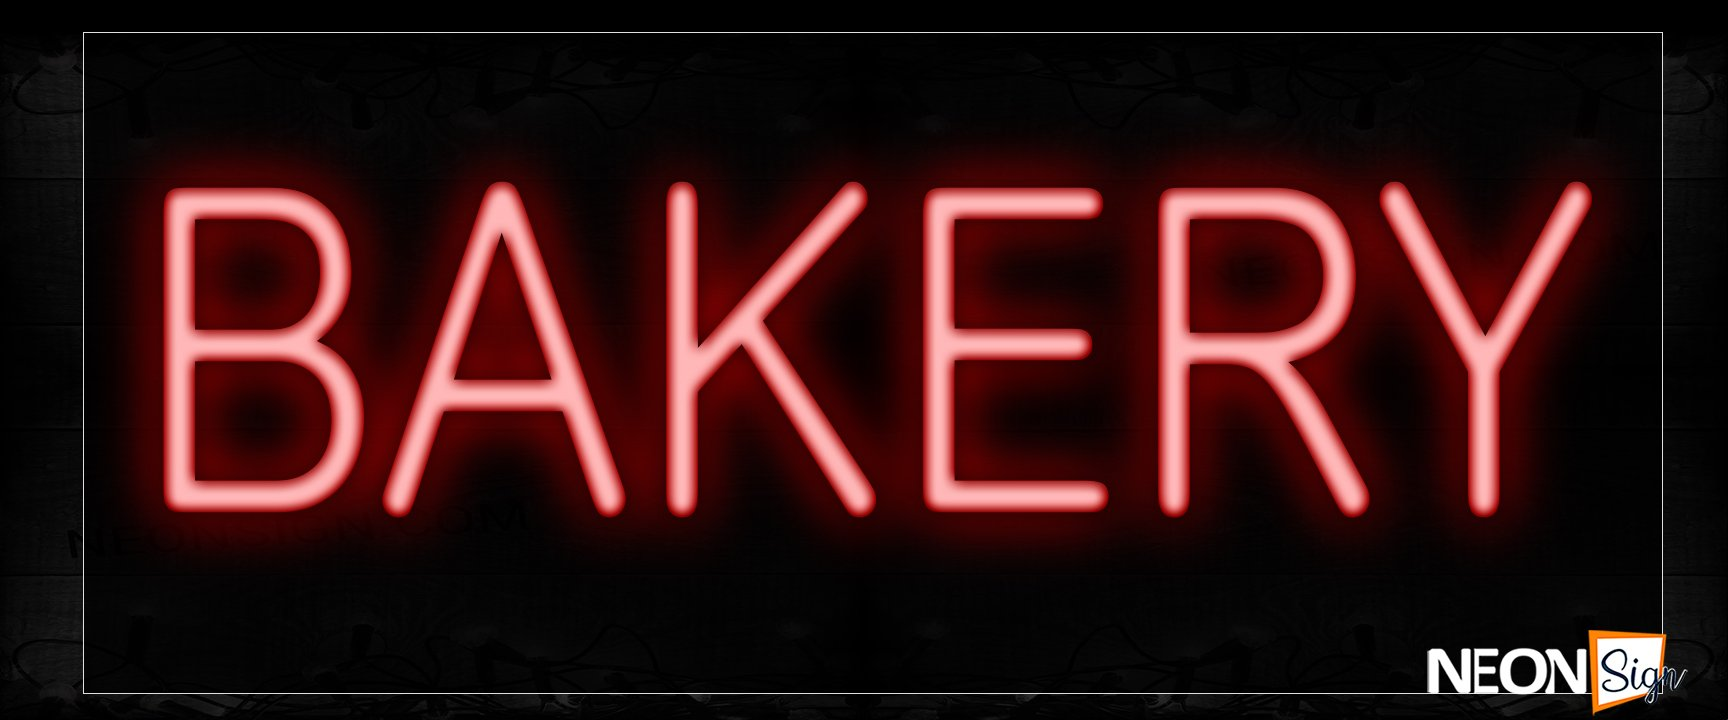 Image of 12009 Bakery In Red Neon Signs_10x24 Black Backing